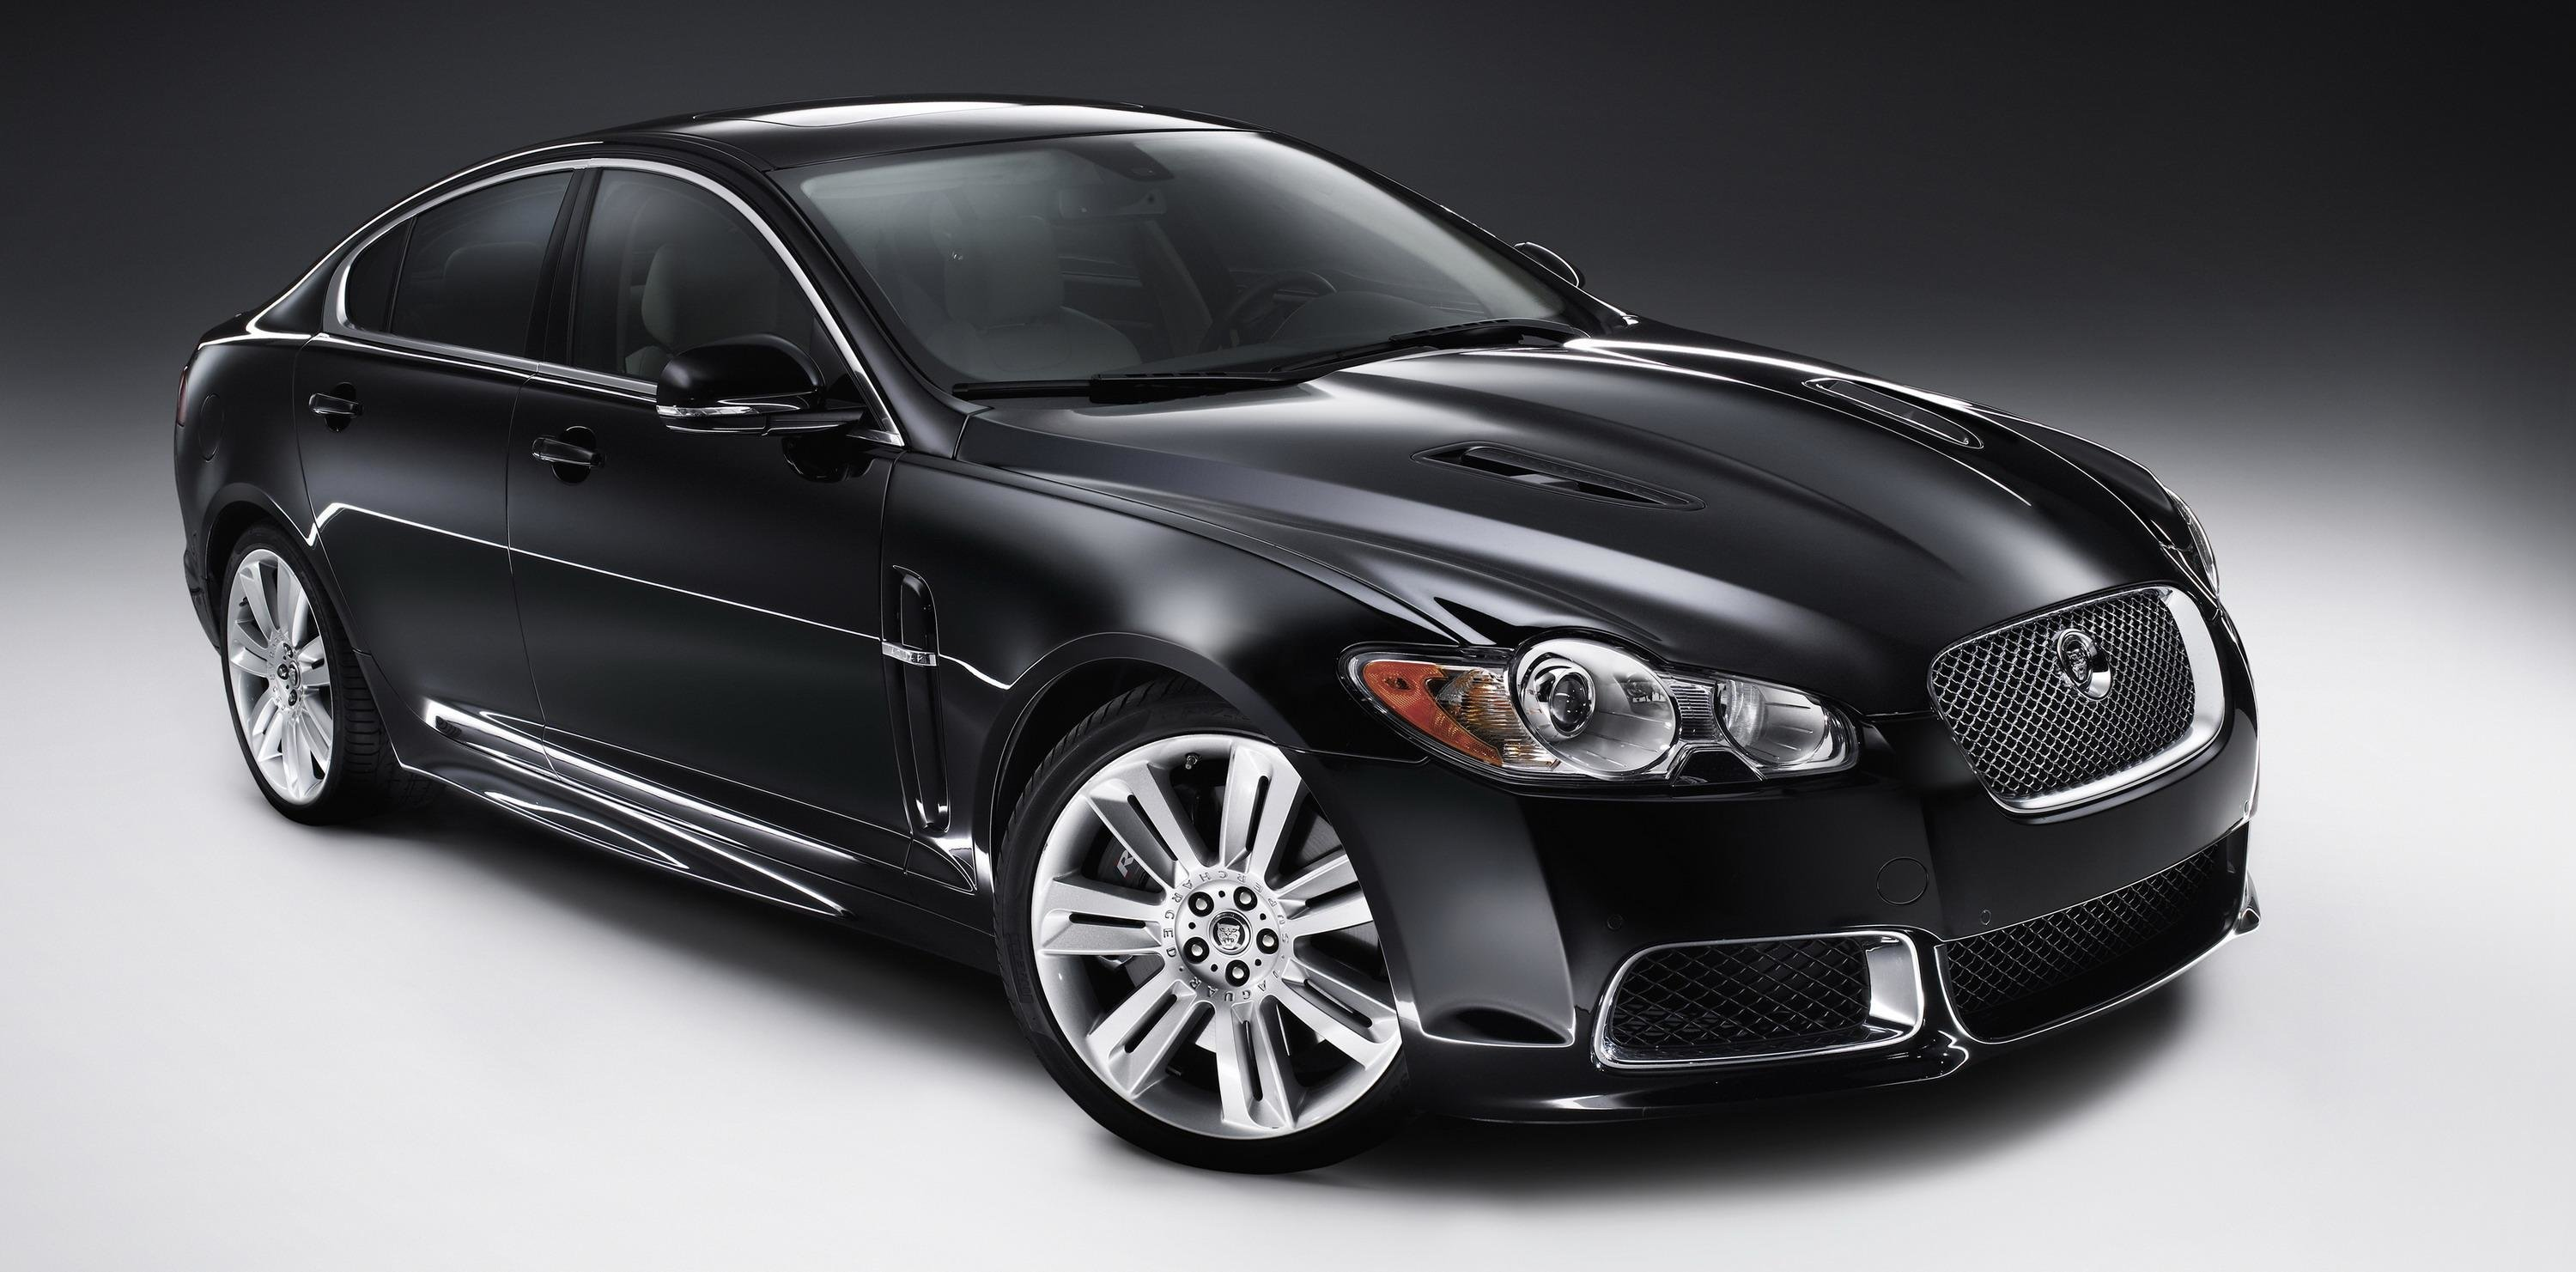 New 2010 Jaguar Xfr Top Speed On This Month